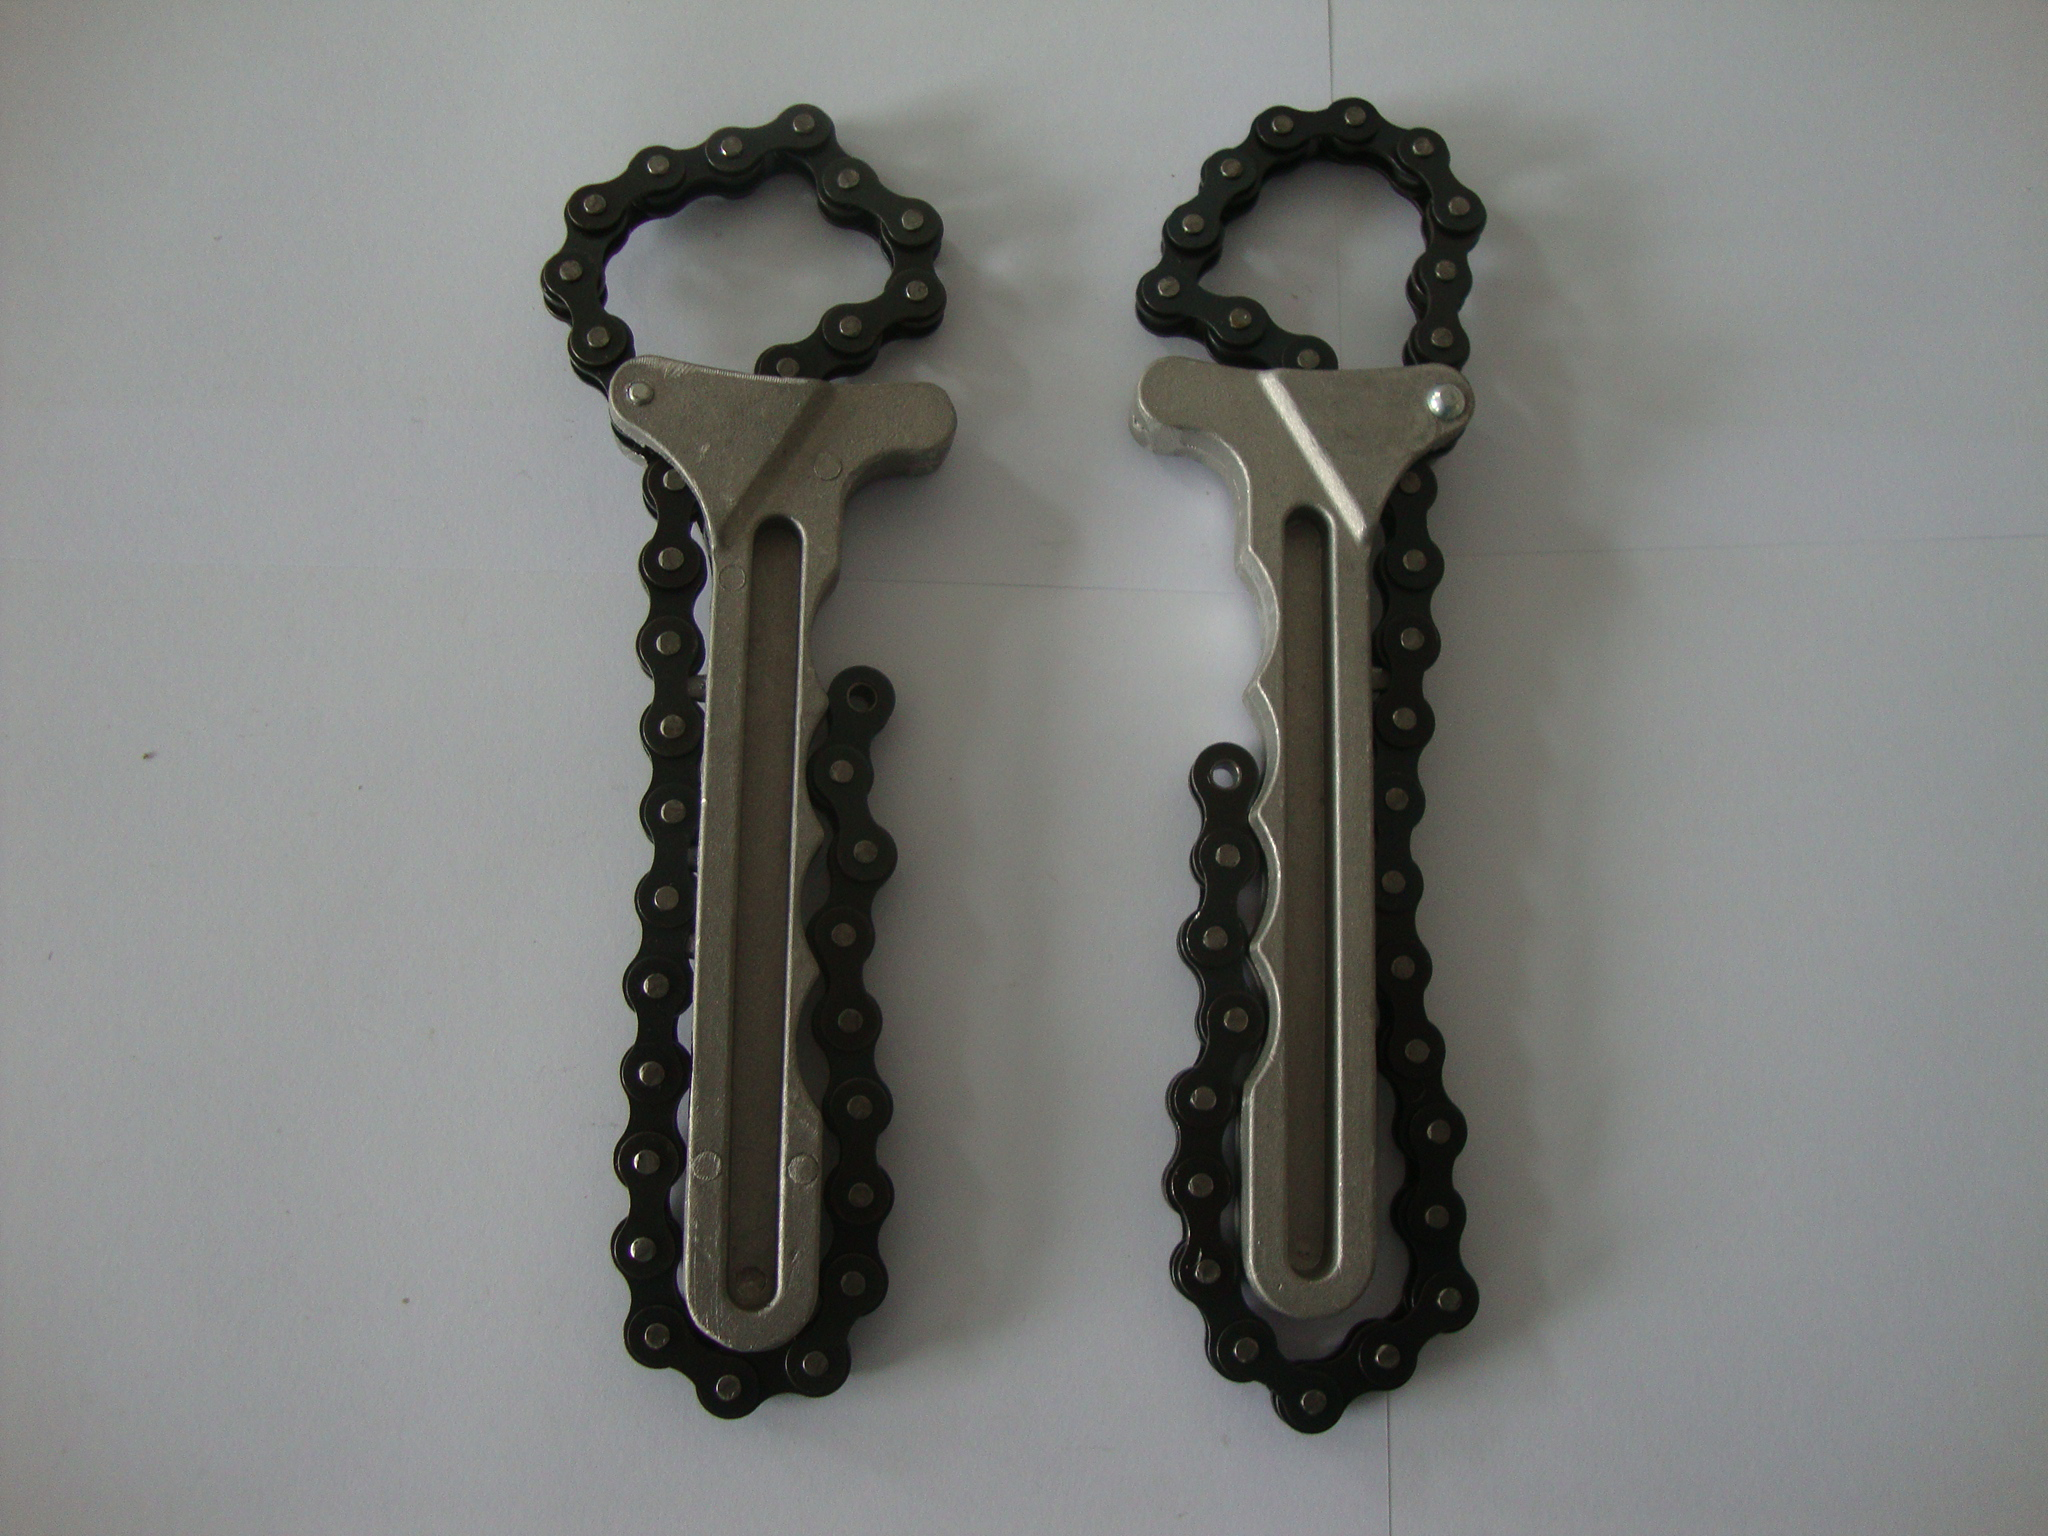 Oil Filter Chain Wrench